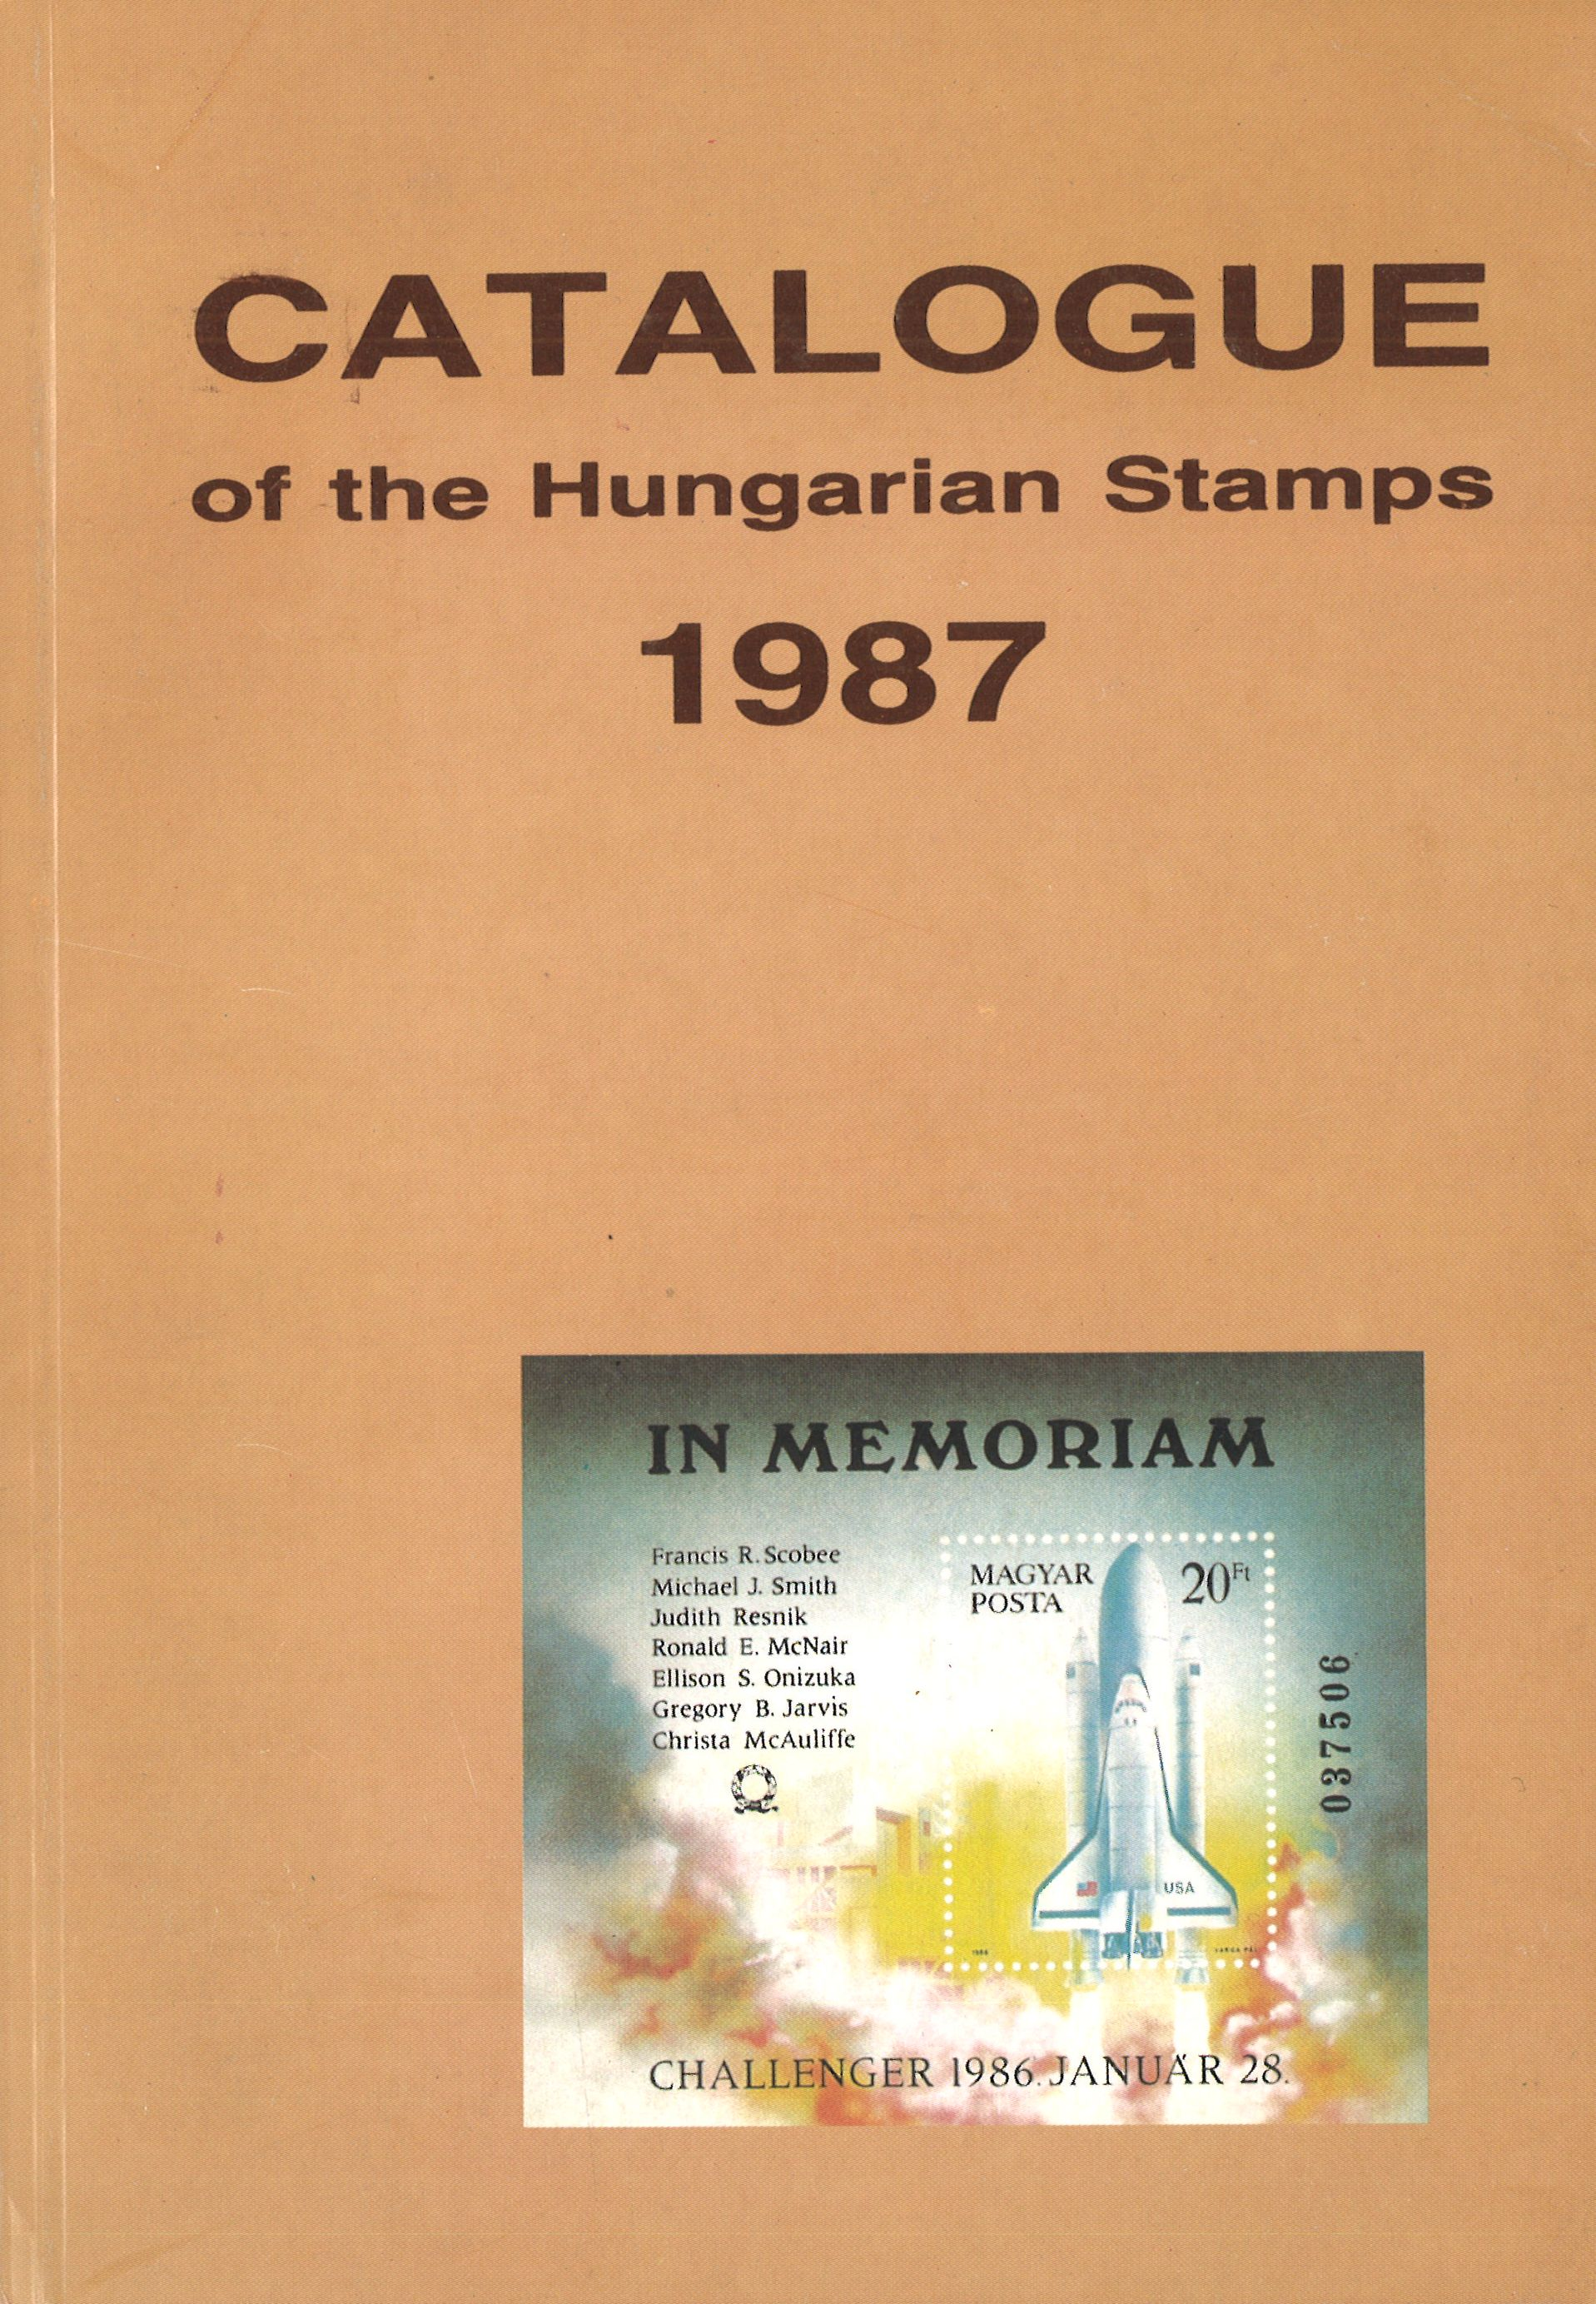 Philatelia Hungarica Ungarn Catalogue Of The Hungarian Stamps 1987 Online Shop